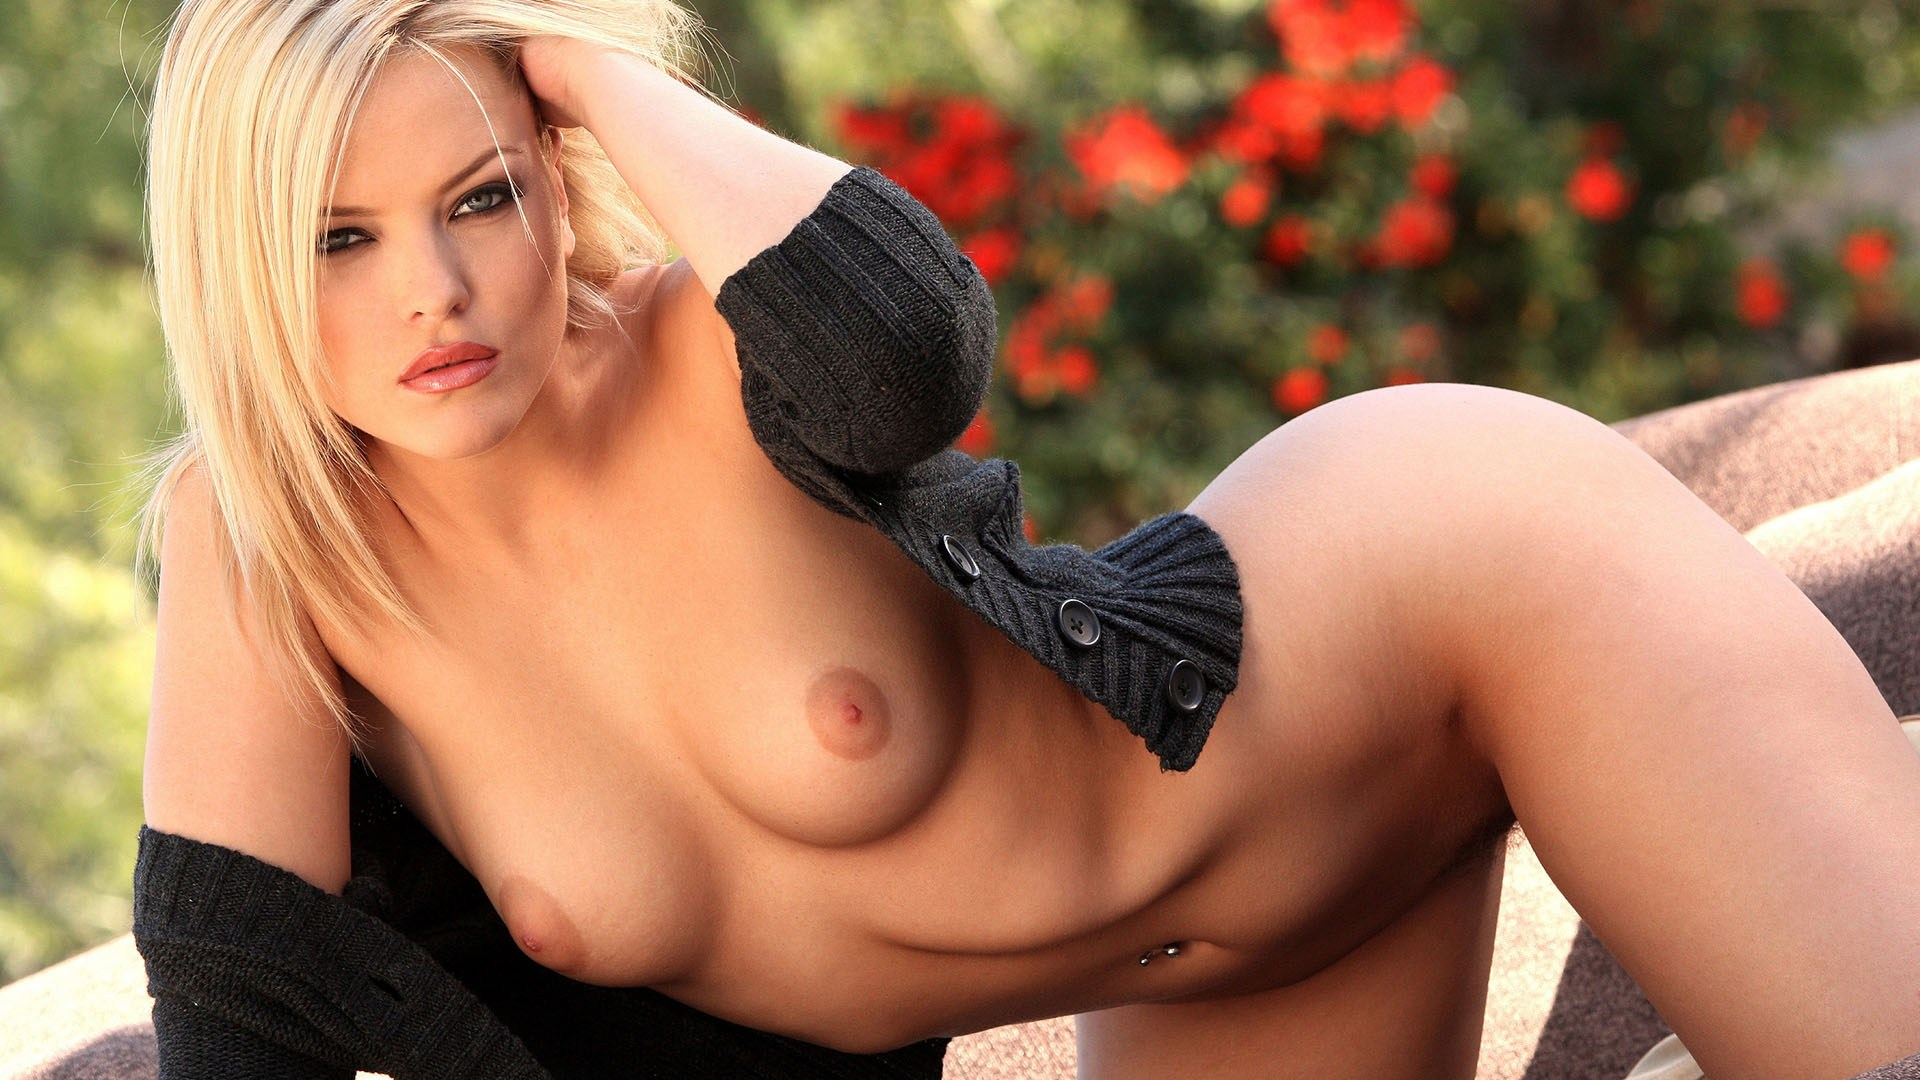 Porn Alexis Texas nude photos 2019